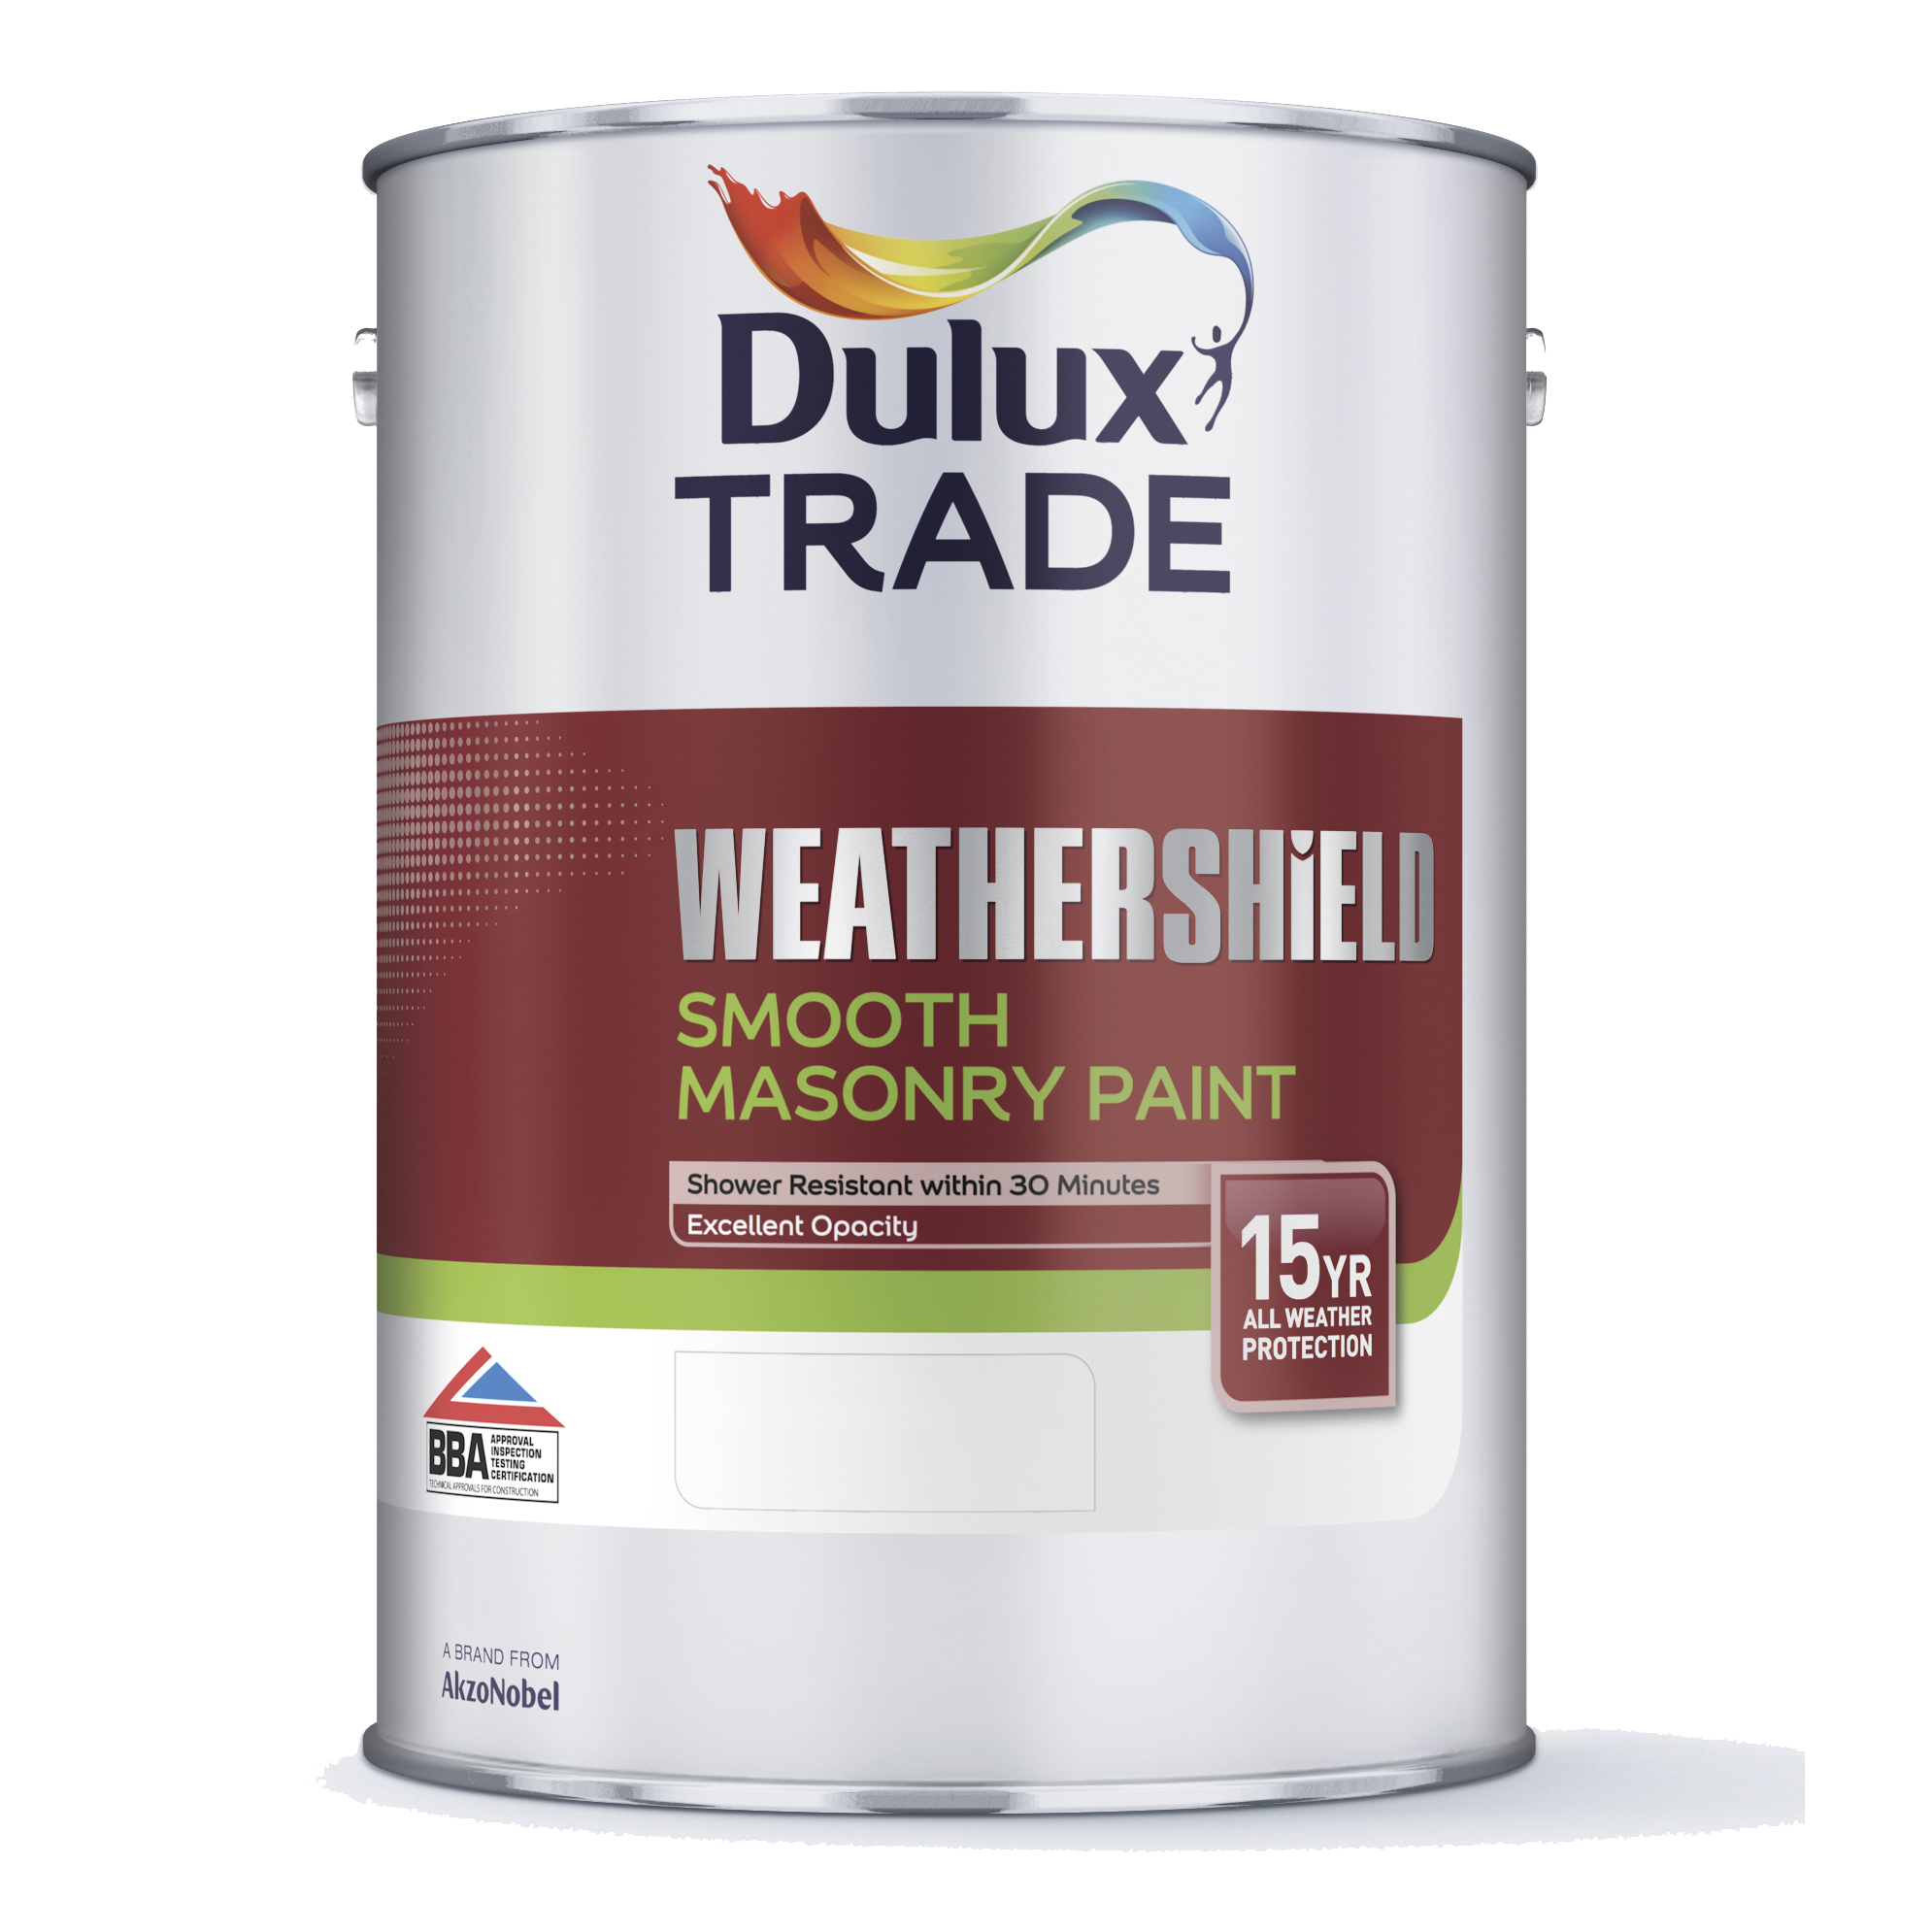 S g bailey paints ltd exterior finishes - Weathershield exterior paint system ...